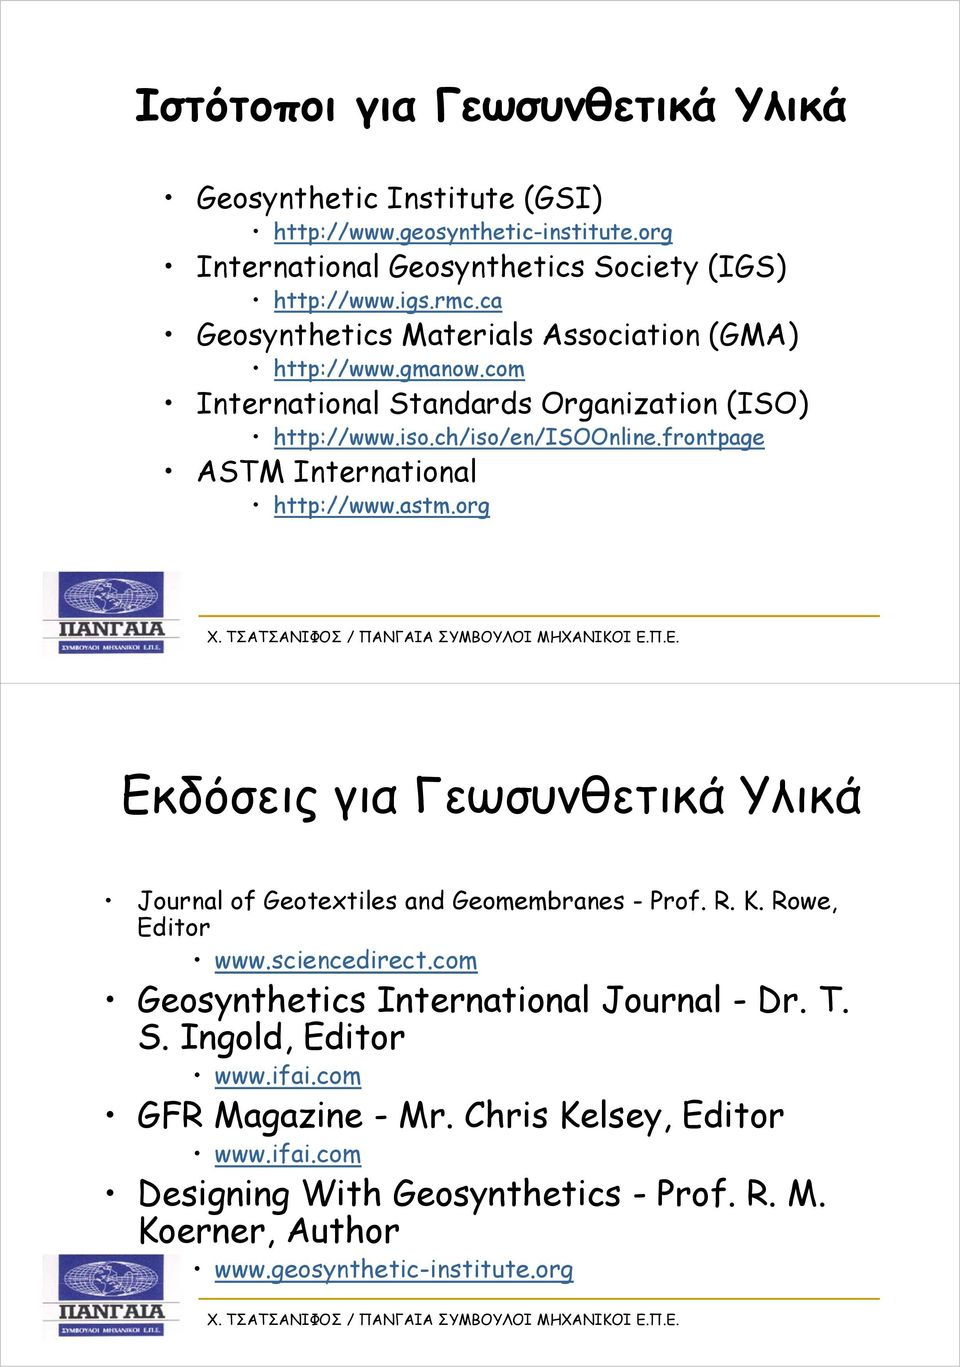 frontpage ASTM International http://www.astm.org. Εκδόσεις για Γεωσυνθετικά Υλικά Journal of Geotextiles and Geomembranes - Prof. R. K. Rowe, Editor www.sciencedirect.